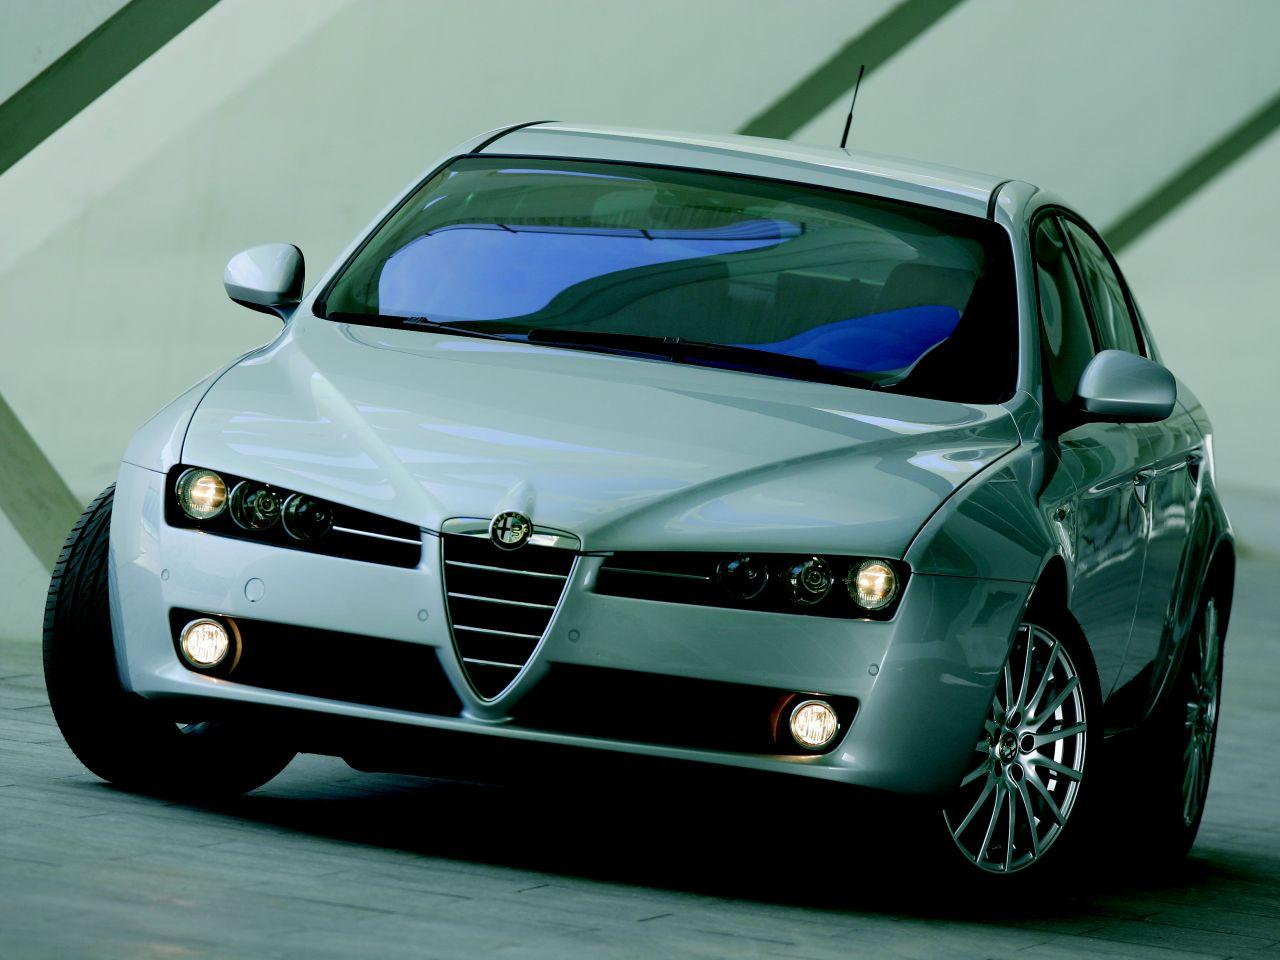 alfa romeo 159 occasion video aankoopadvies. Black Bedroom Furniture Sets. Home Design Ideas